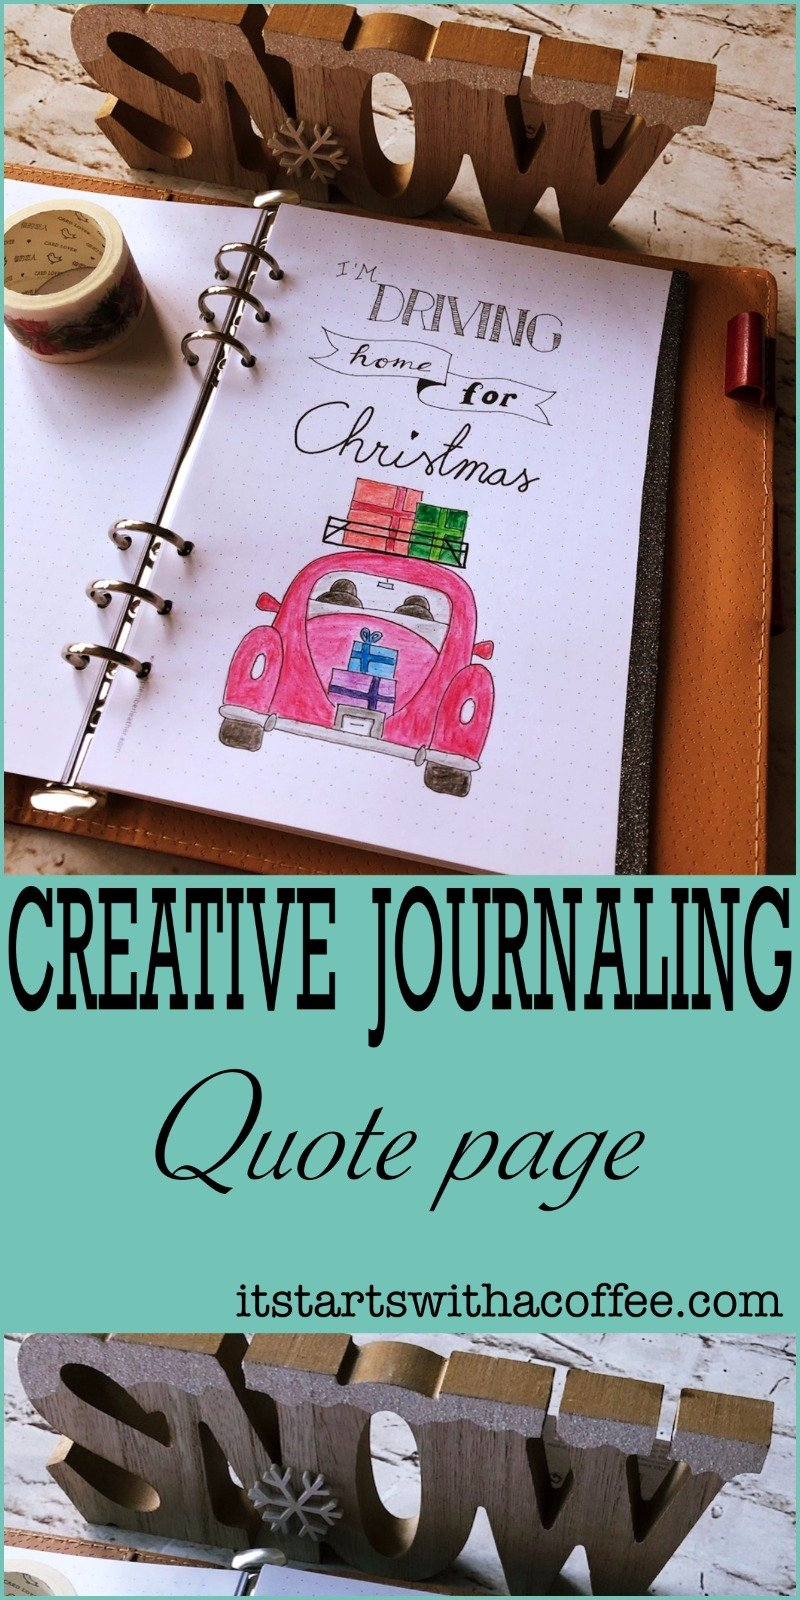 Creative journaling - Quote #1 - itstartswithacoffee.com #creativejournaling #bulletjournaling #planner #quote #quotes #Christmas #xmas